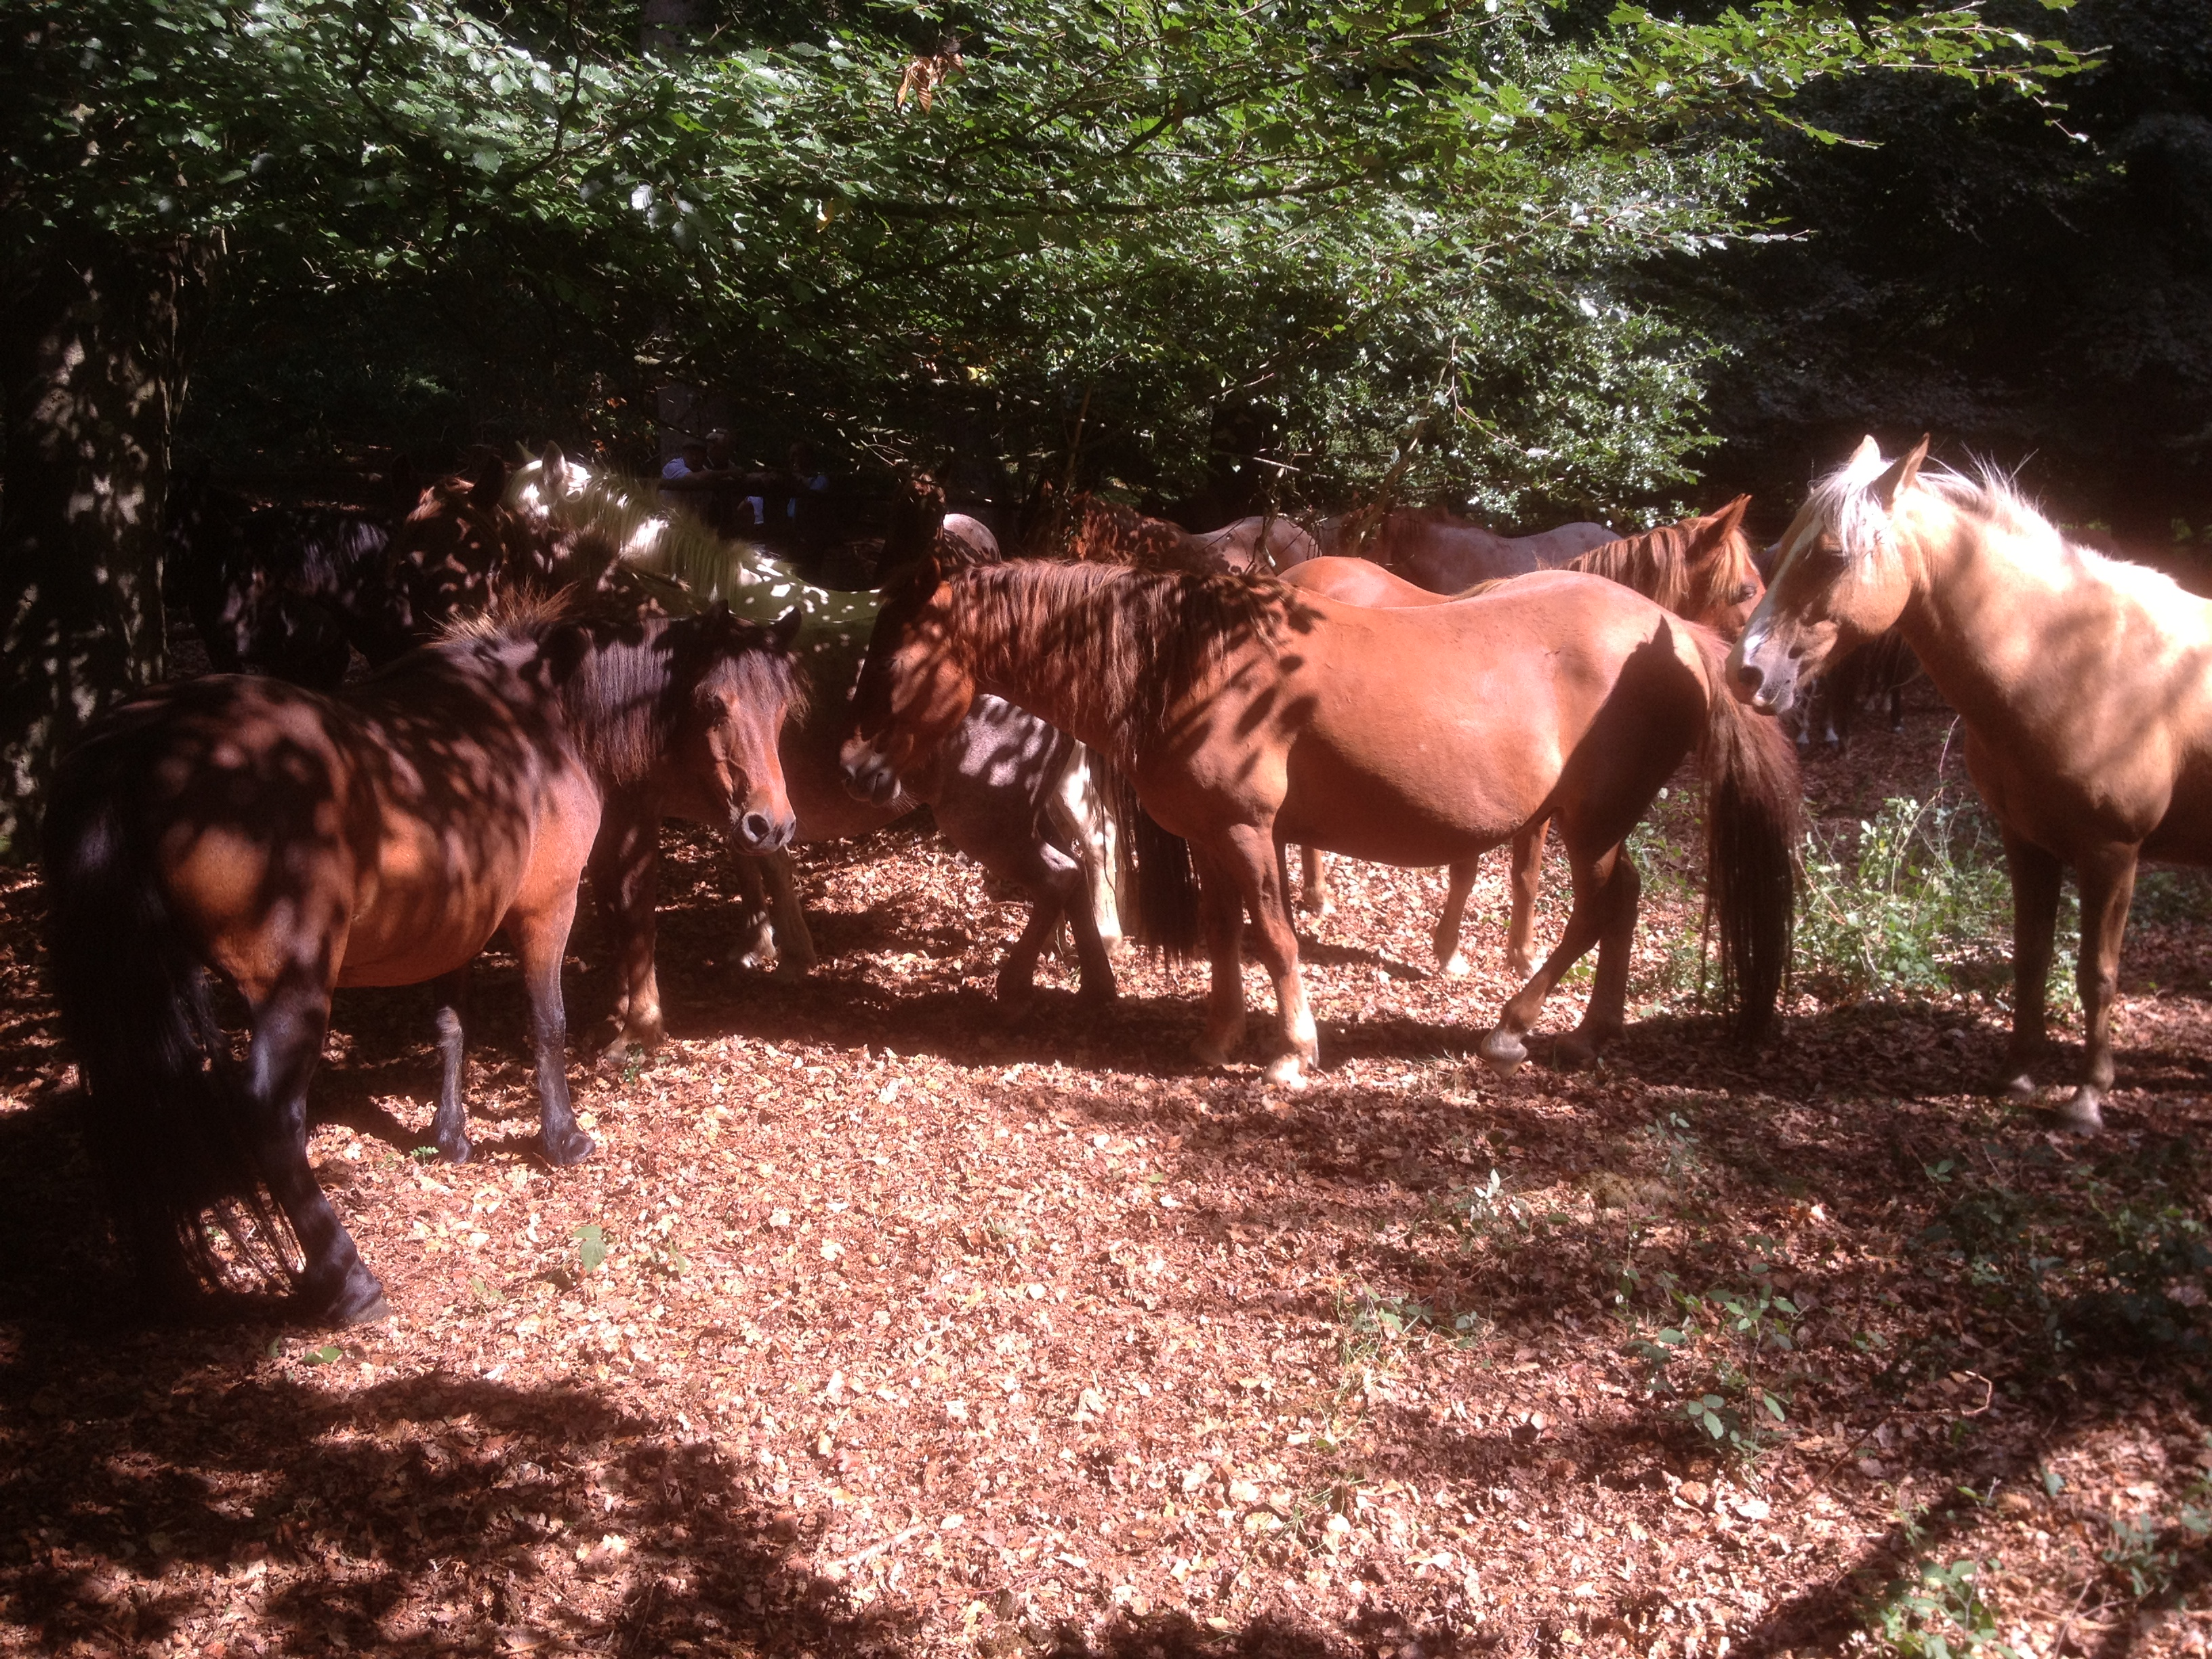 The New Forest ponies co-operate to reduce the plague of flies by using a partners tail to swot flies.